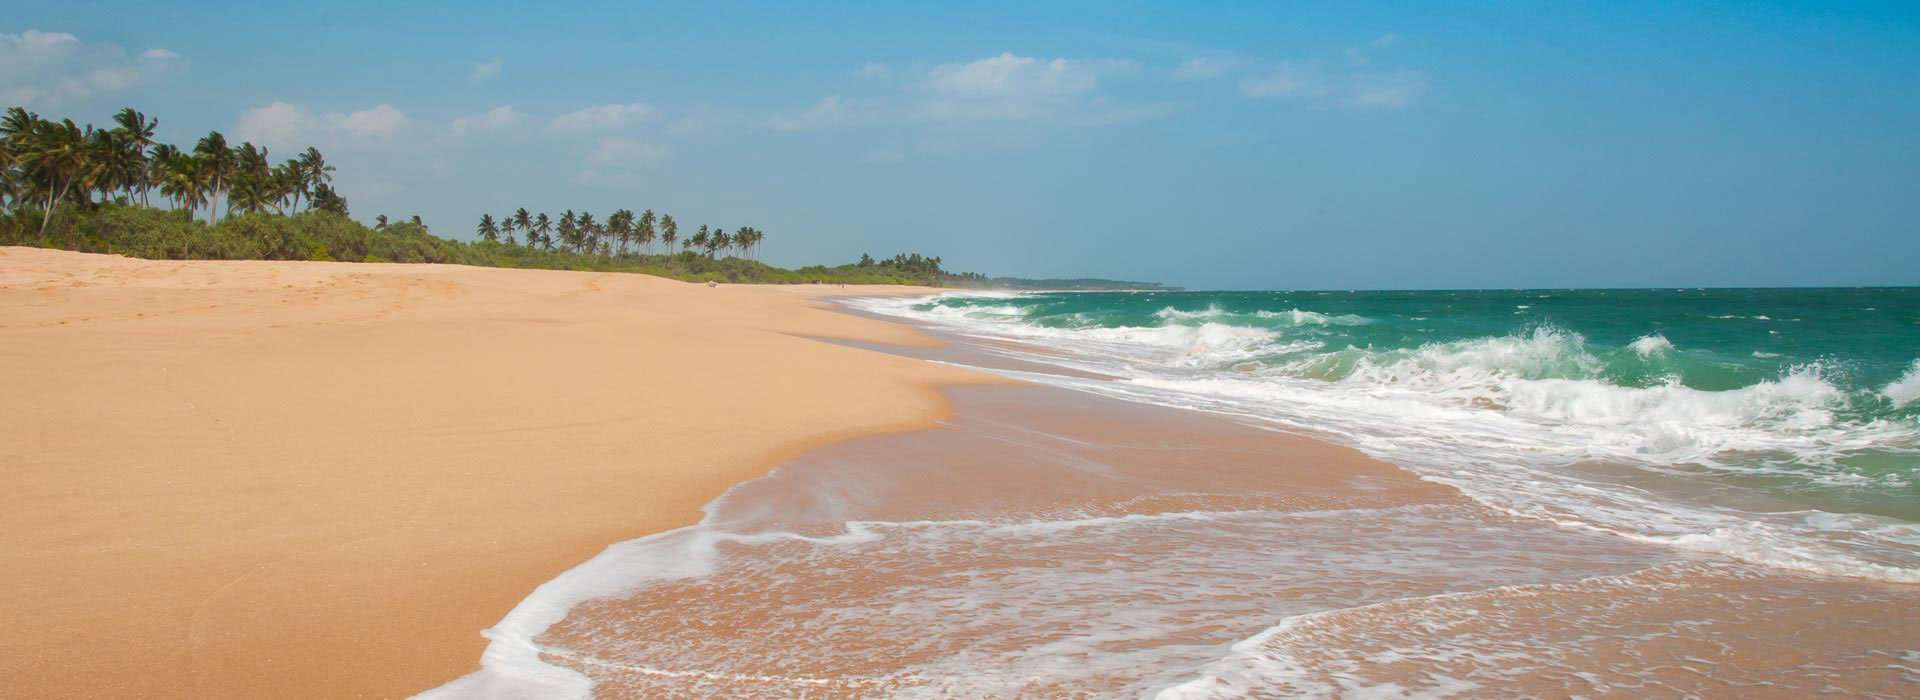 Tangalle Beach, Sri Lanka on a beautiful sunny day